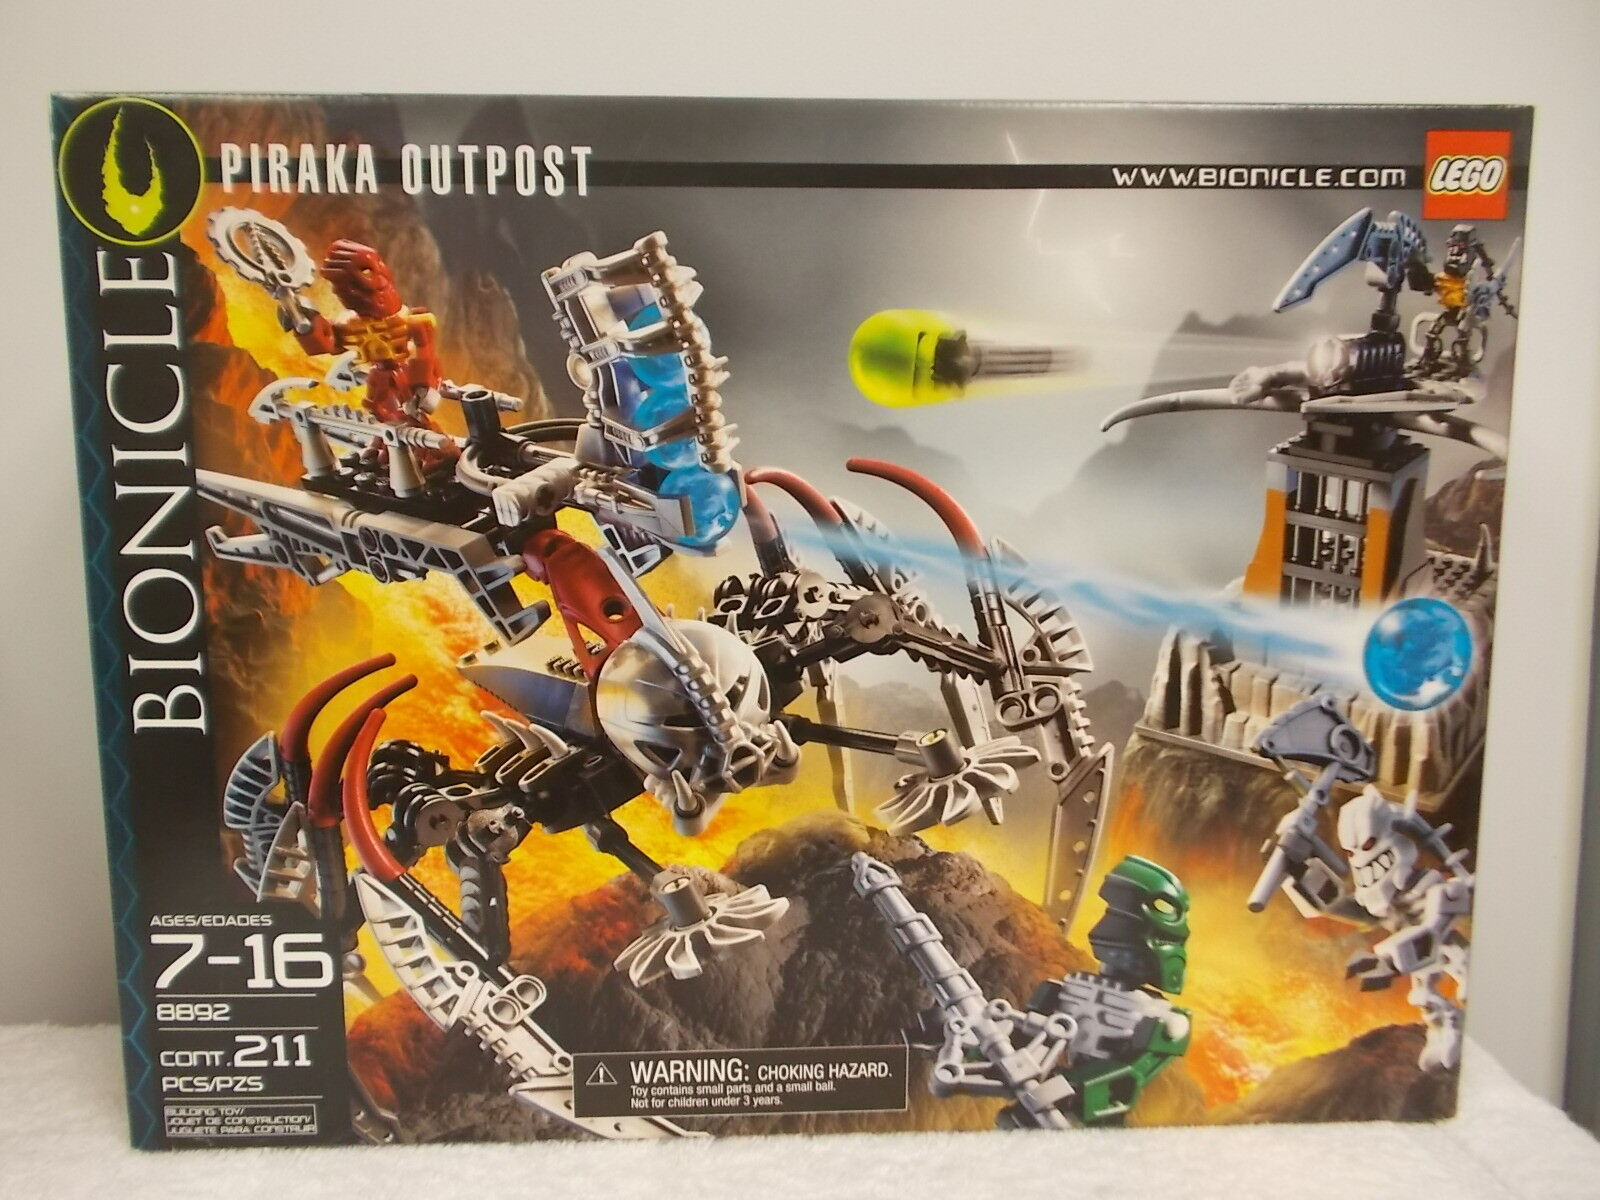 New 2006 Sealed Lego Toy Bionicle Piraka Outpost 211 Pieces 8892